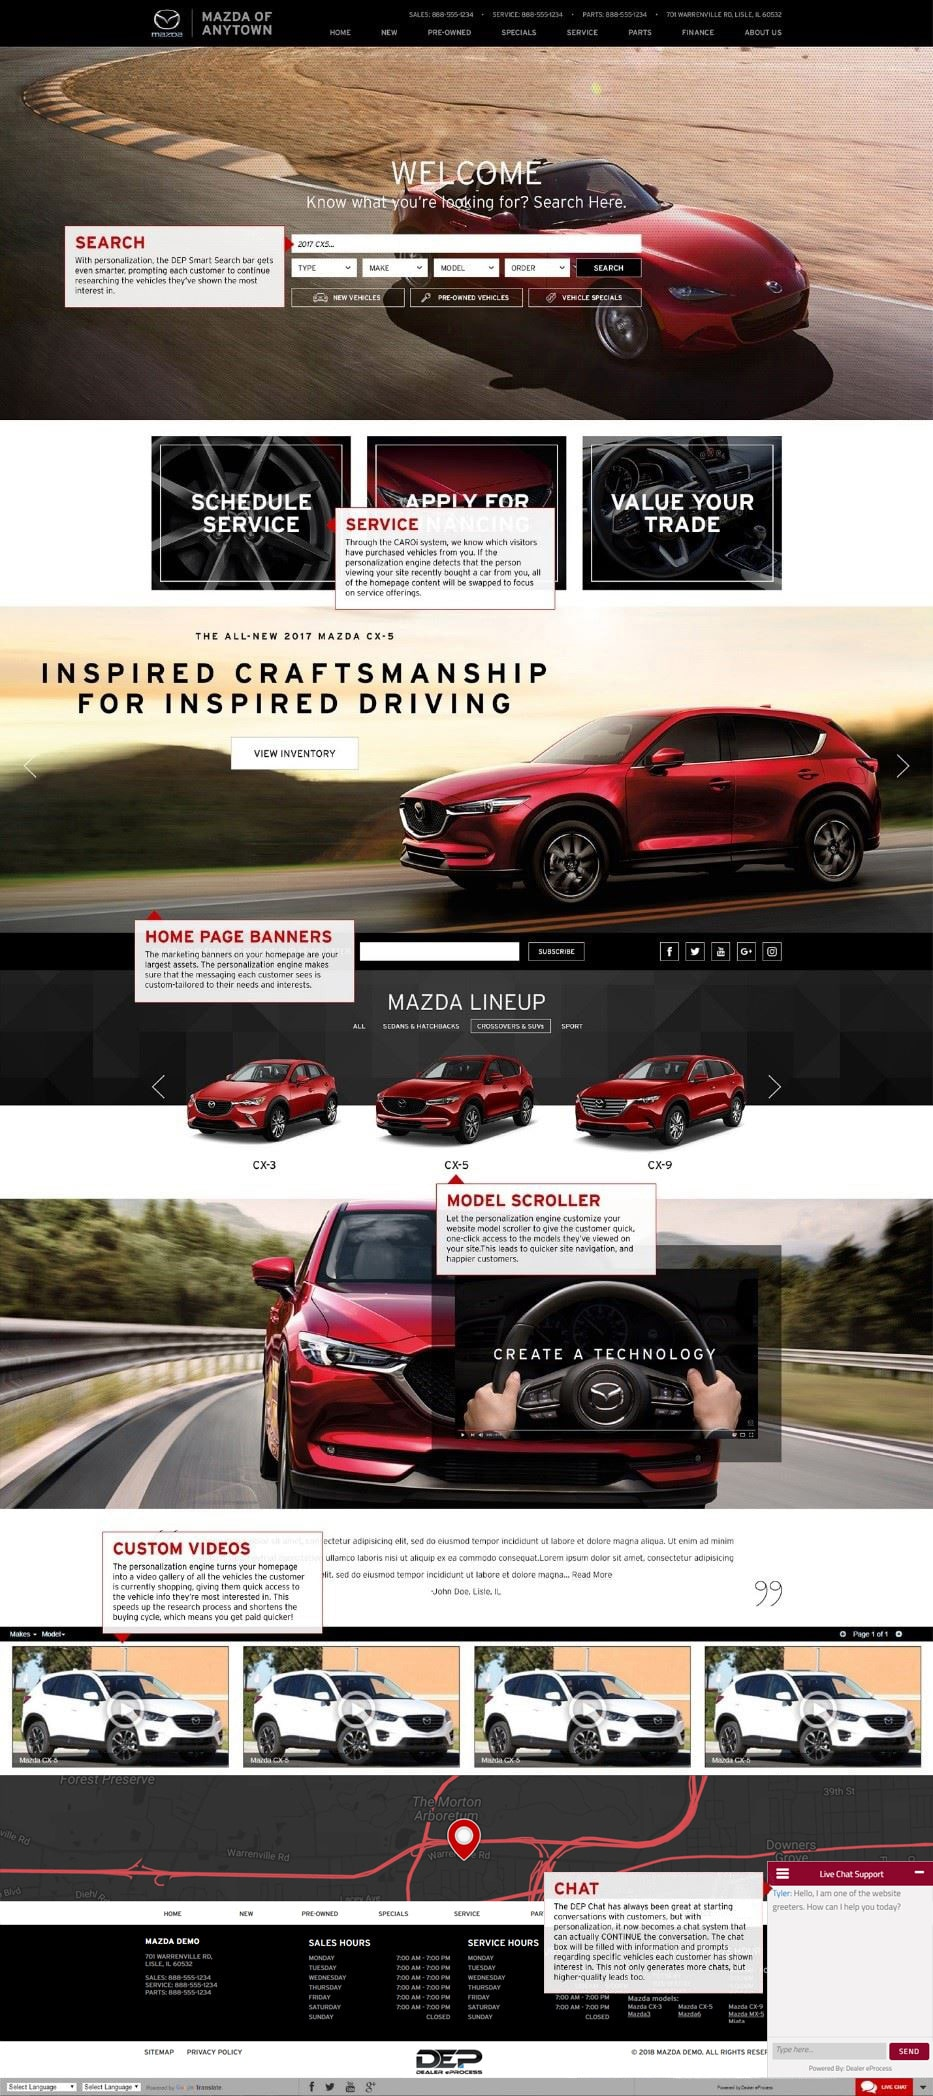 Mazda homepage with personalization features shown